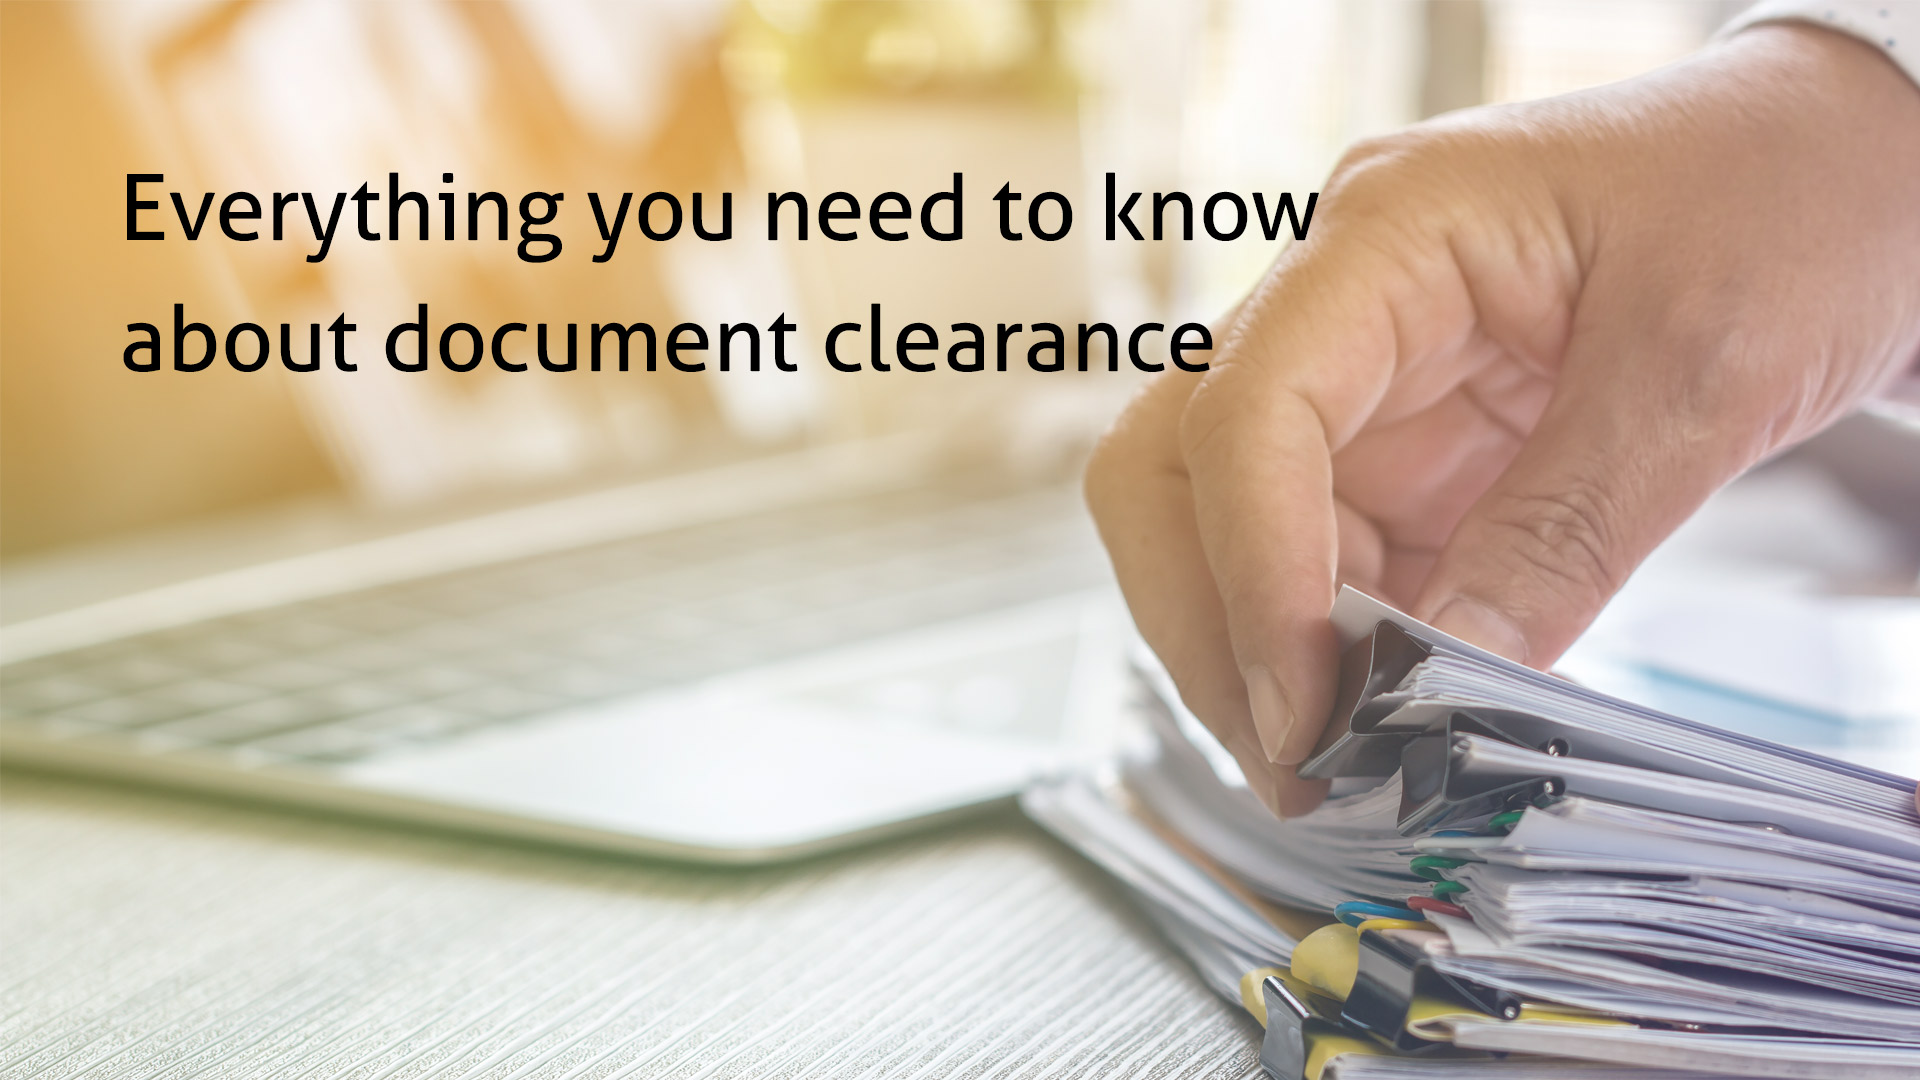 Everything you need to know about document clearance